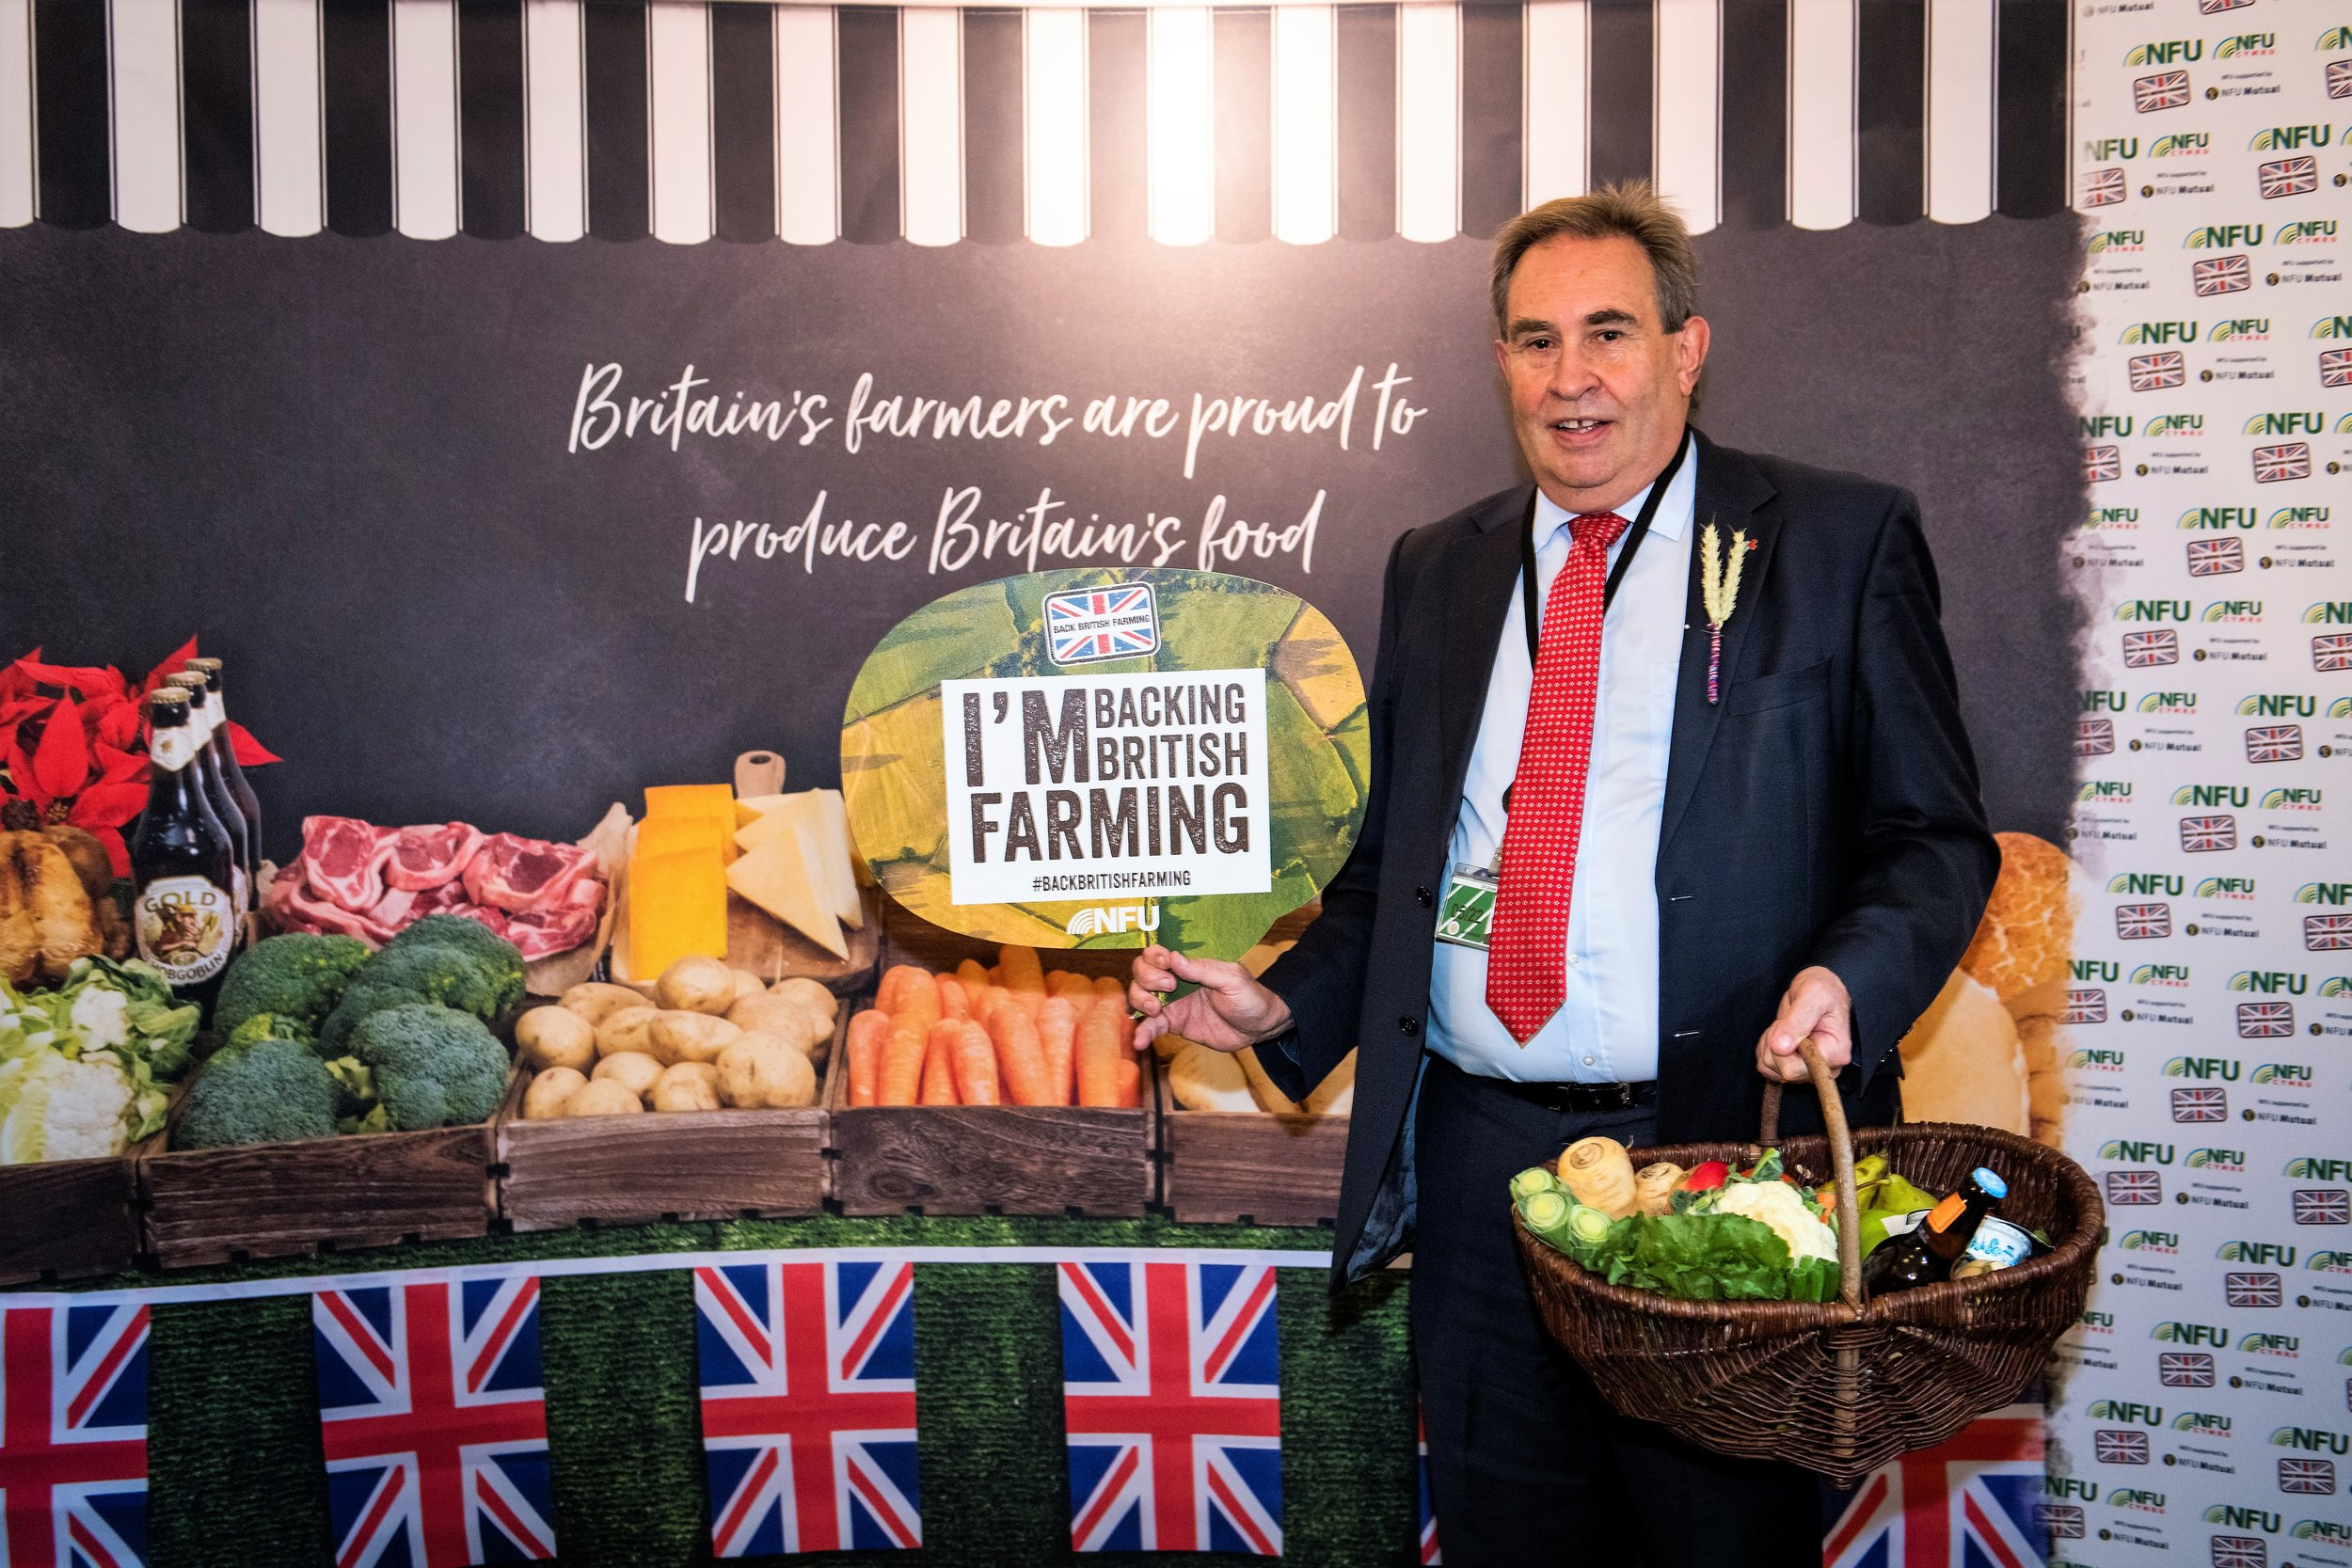 - Sadly today's parliamentary event to celebrate British farmers has been downscaled because parliament has been prorogued. But I'm still proud to support our farmers. Photo from 2018